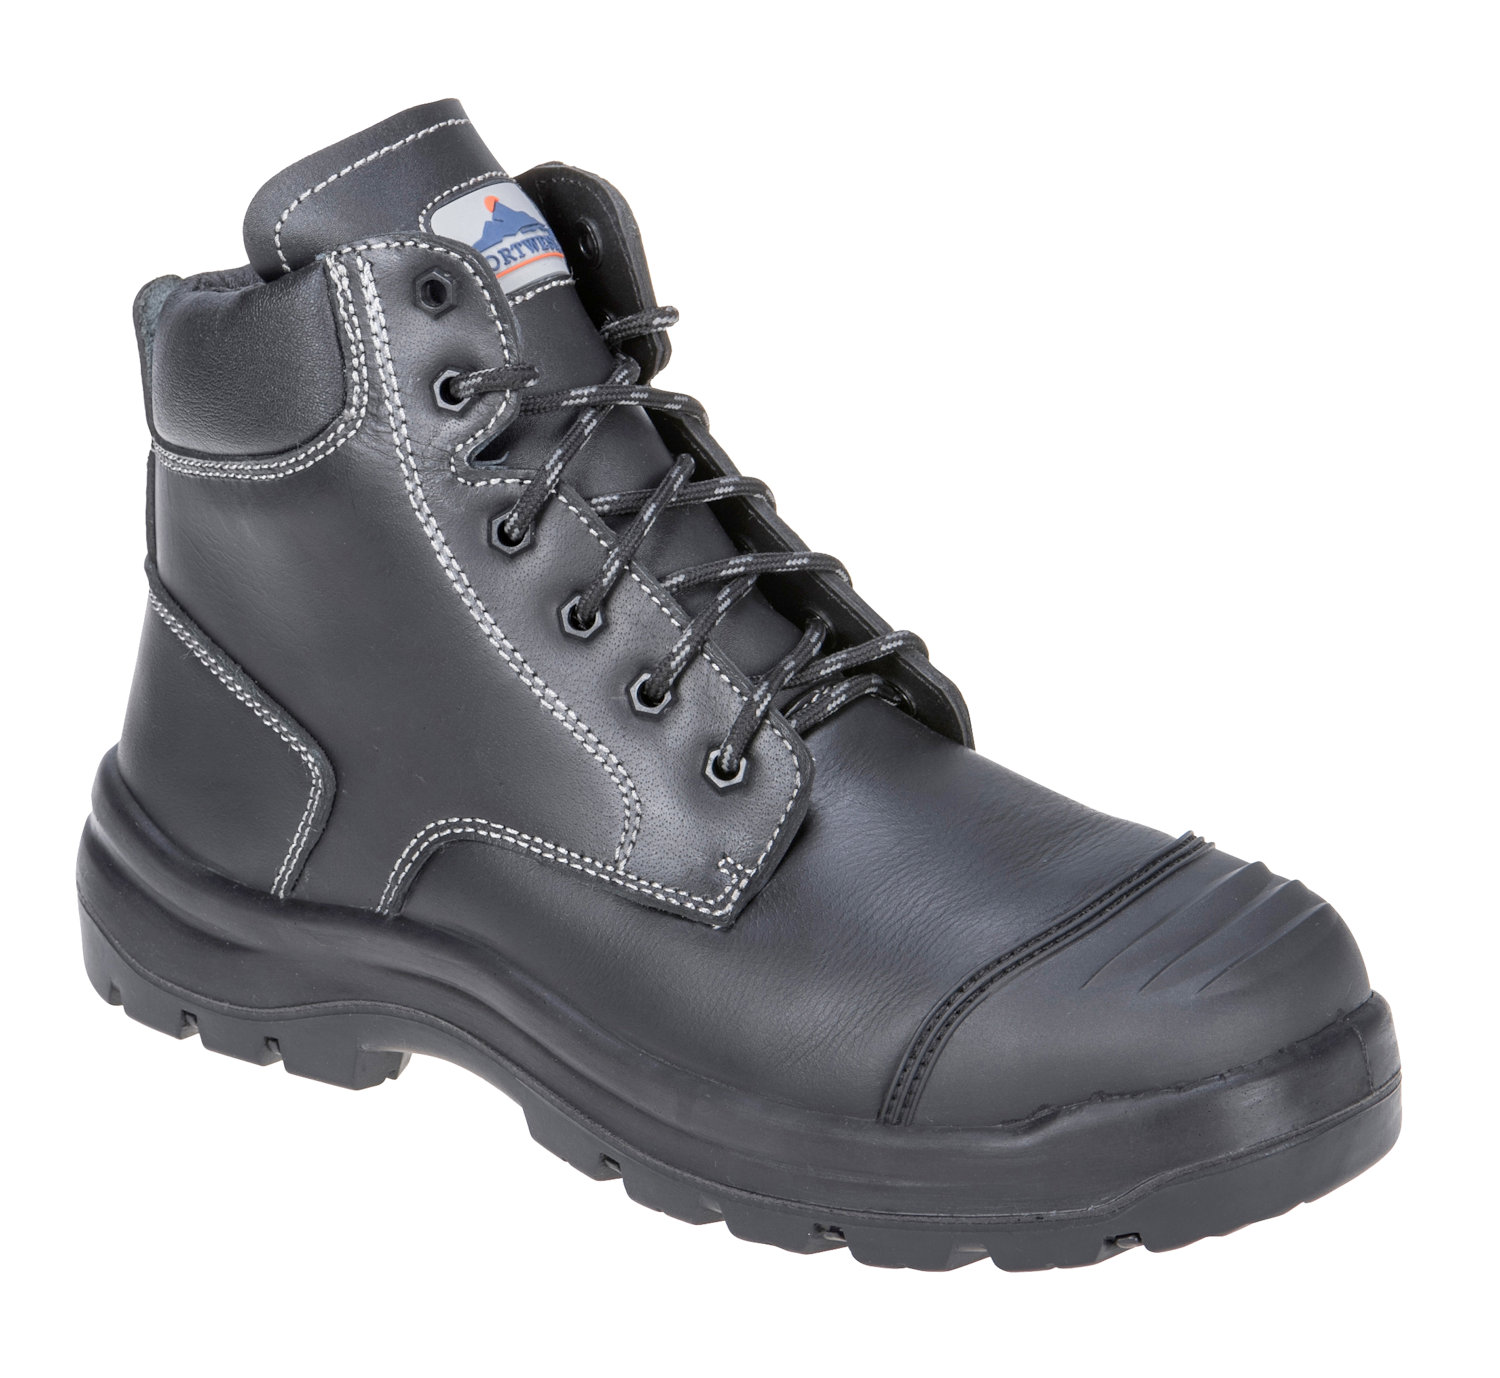 Portwest FD10 Clyde Safety Boot